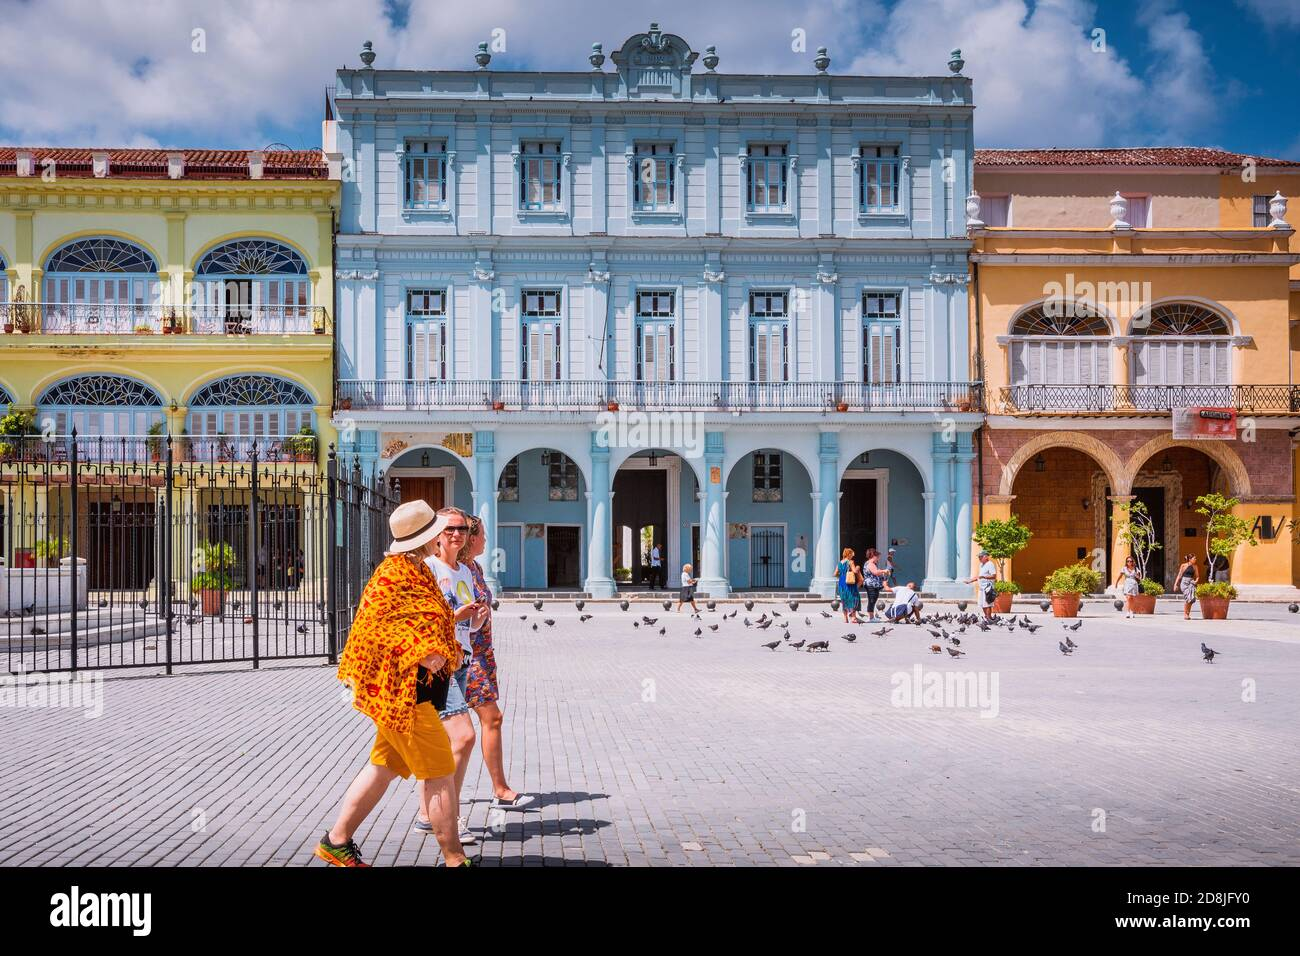 Colorful buildings in Plaza Vieja - Old Square. Cuba, Latin America and the Caribbean Stock Photo